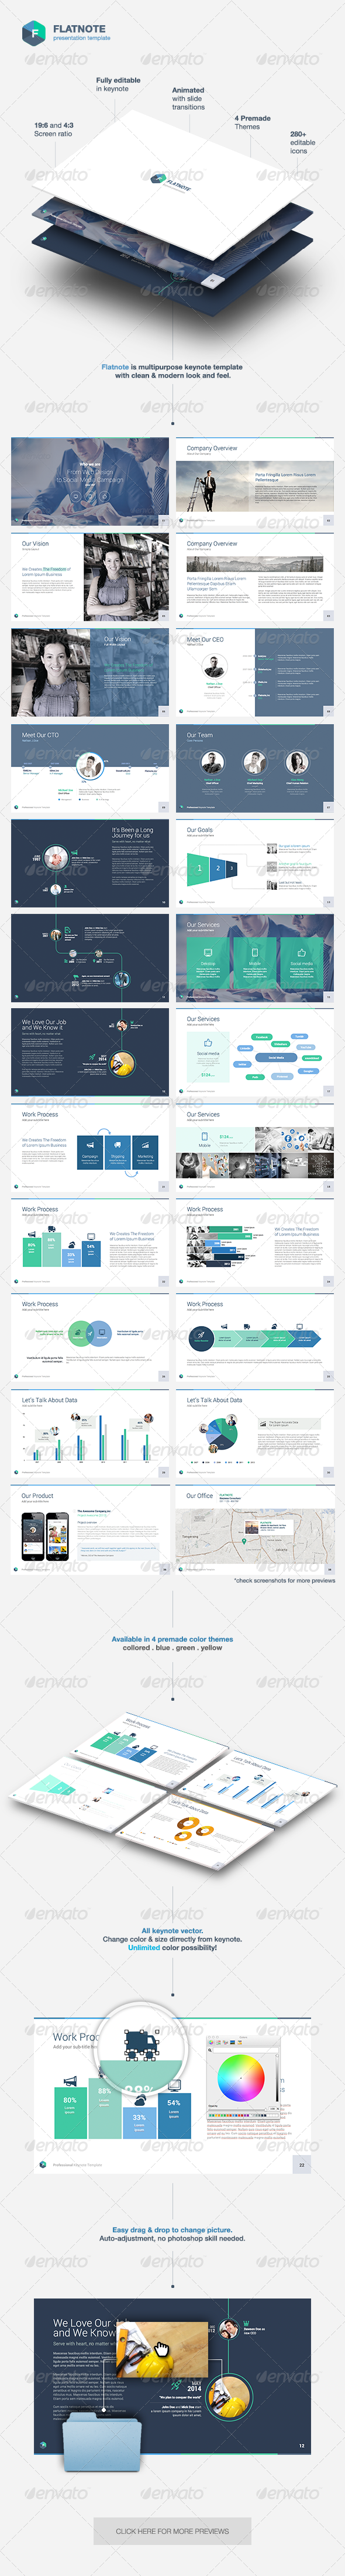 GraphicRiver Flatnote Business Keynote Template 7392538